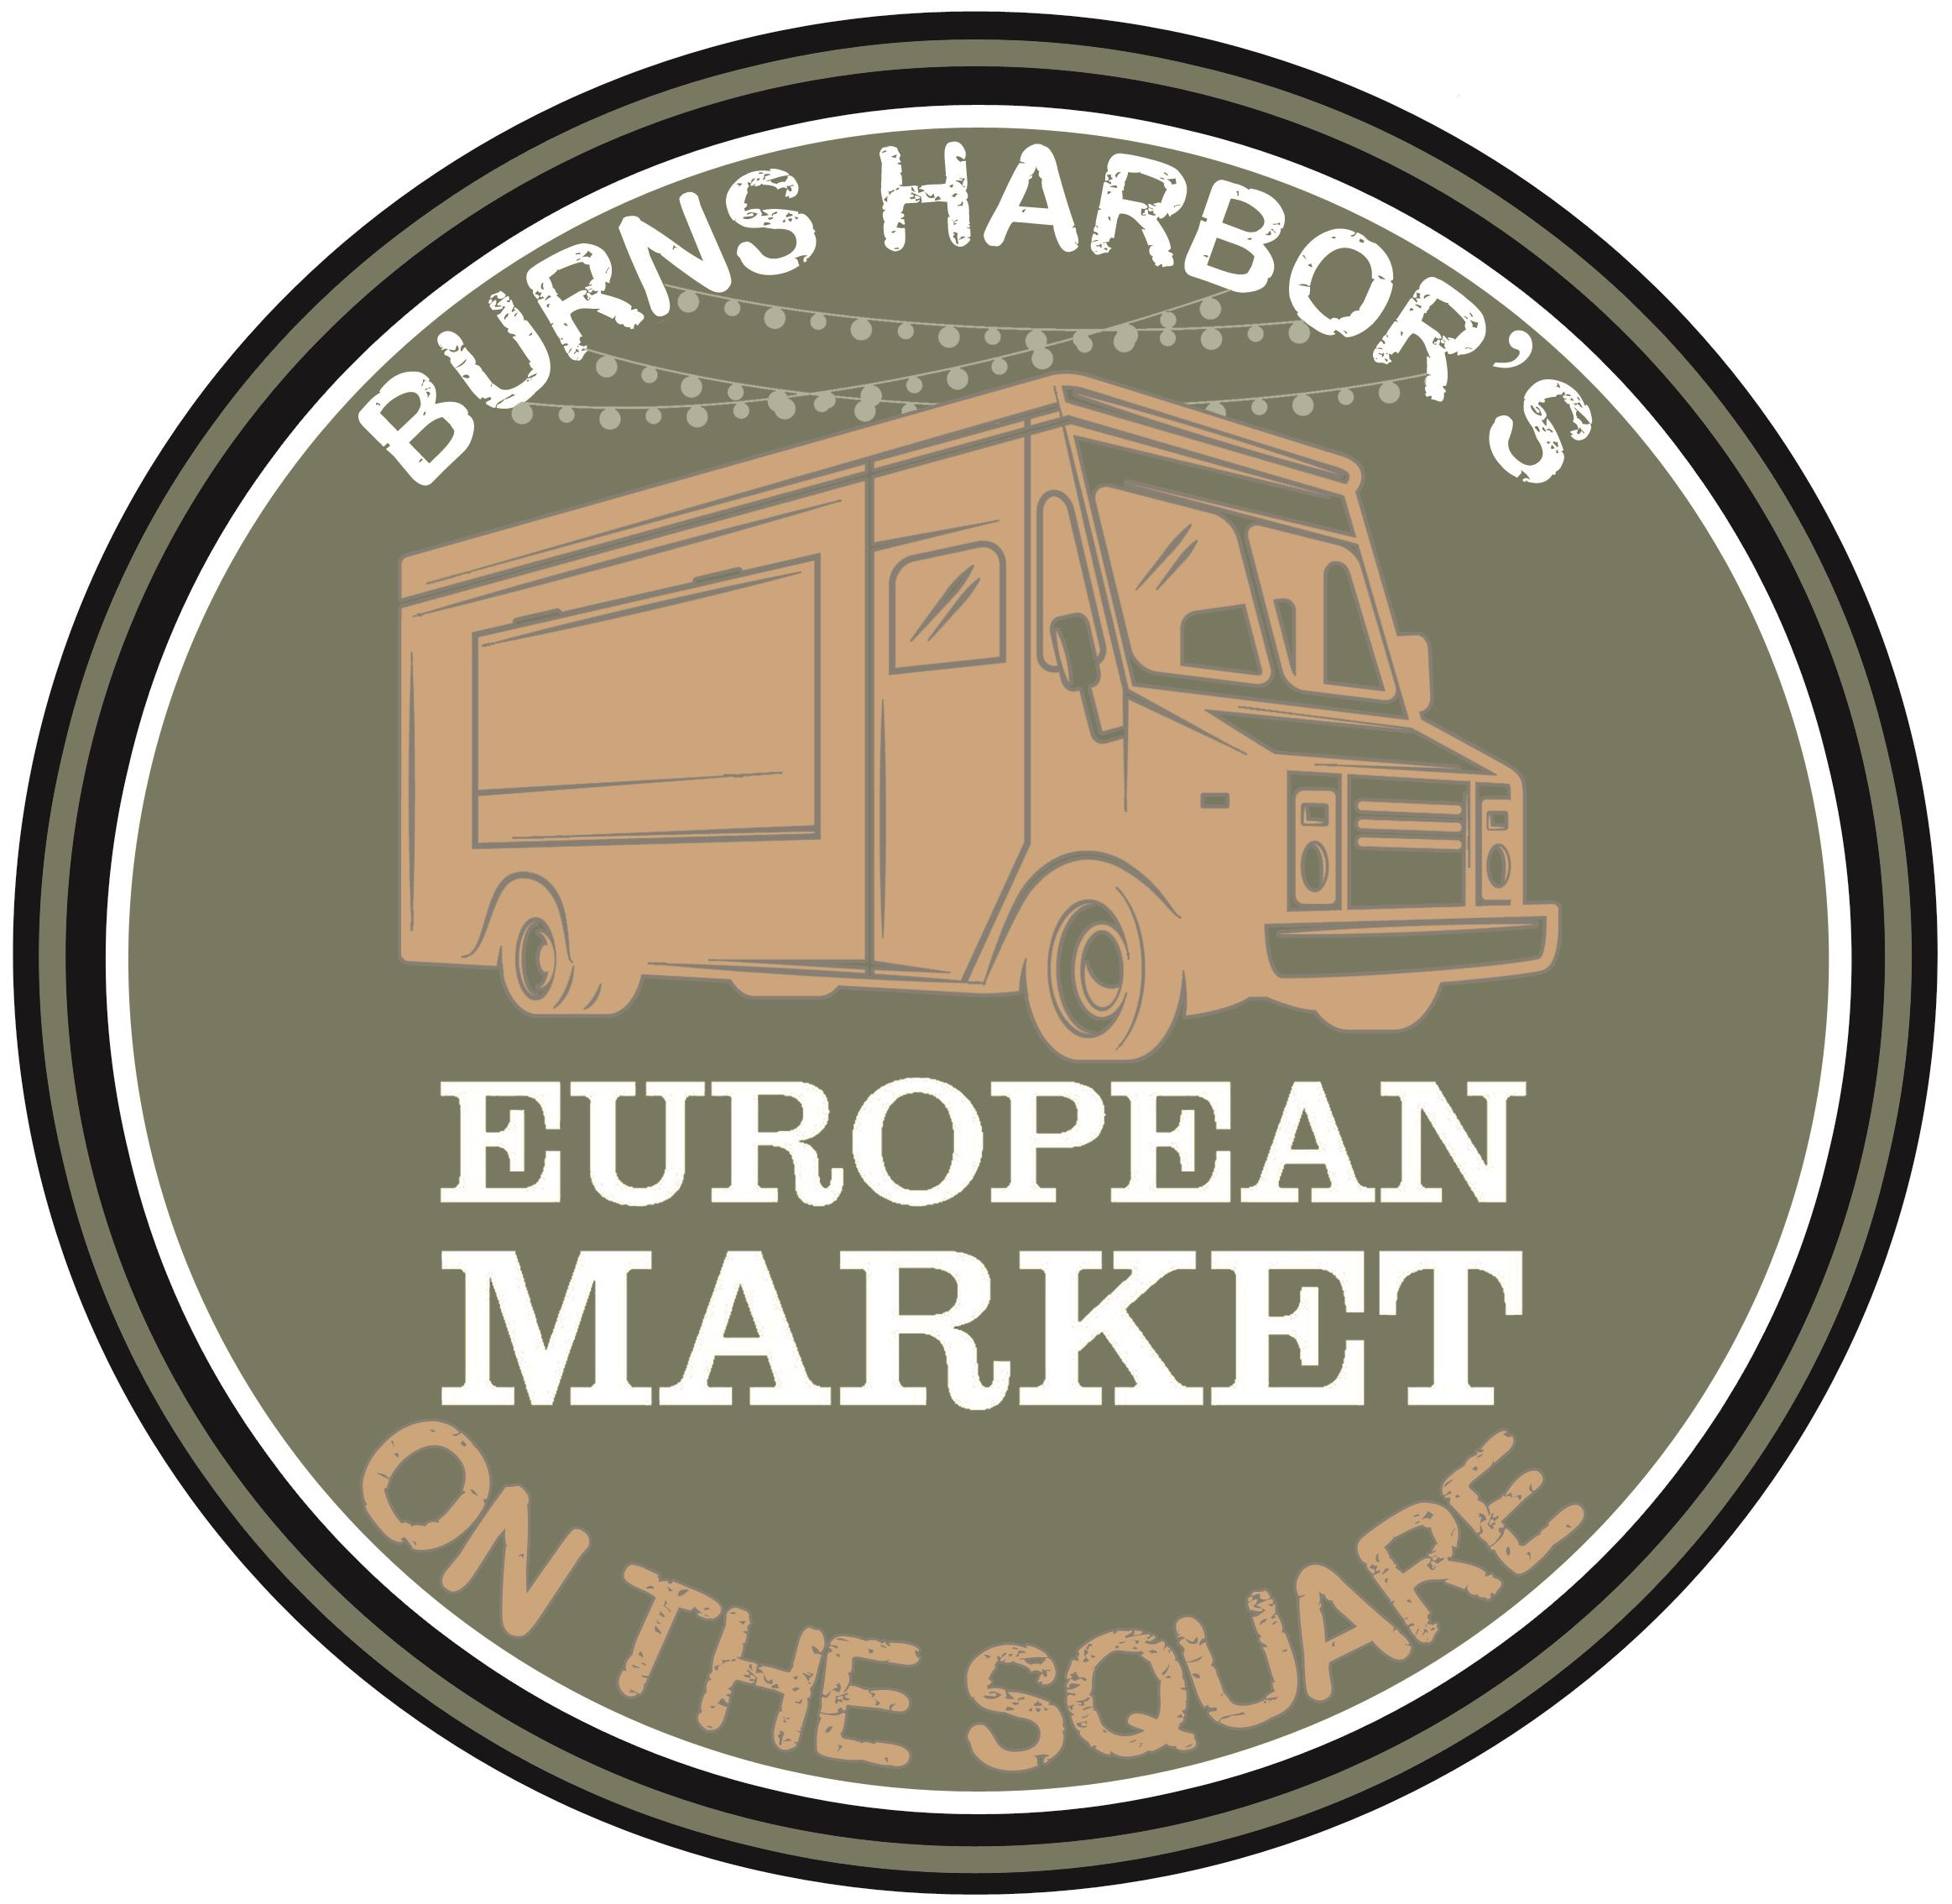 Burns Harbor Food Truck Square